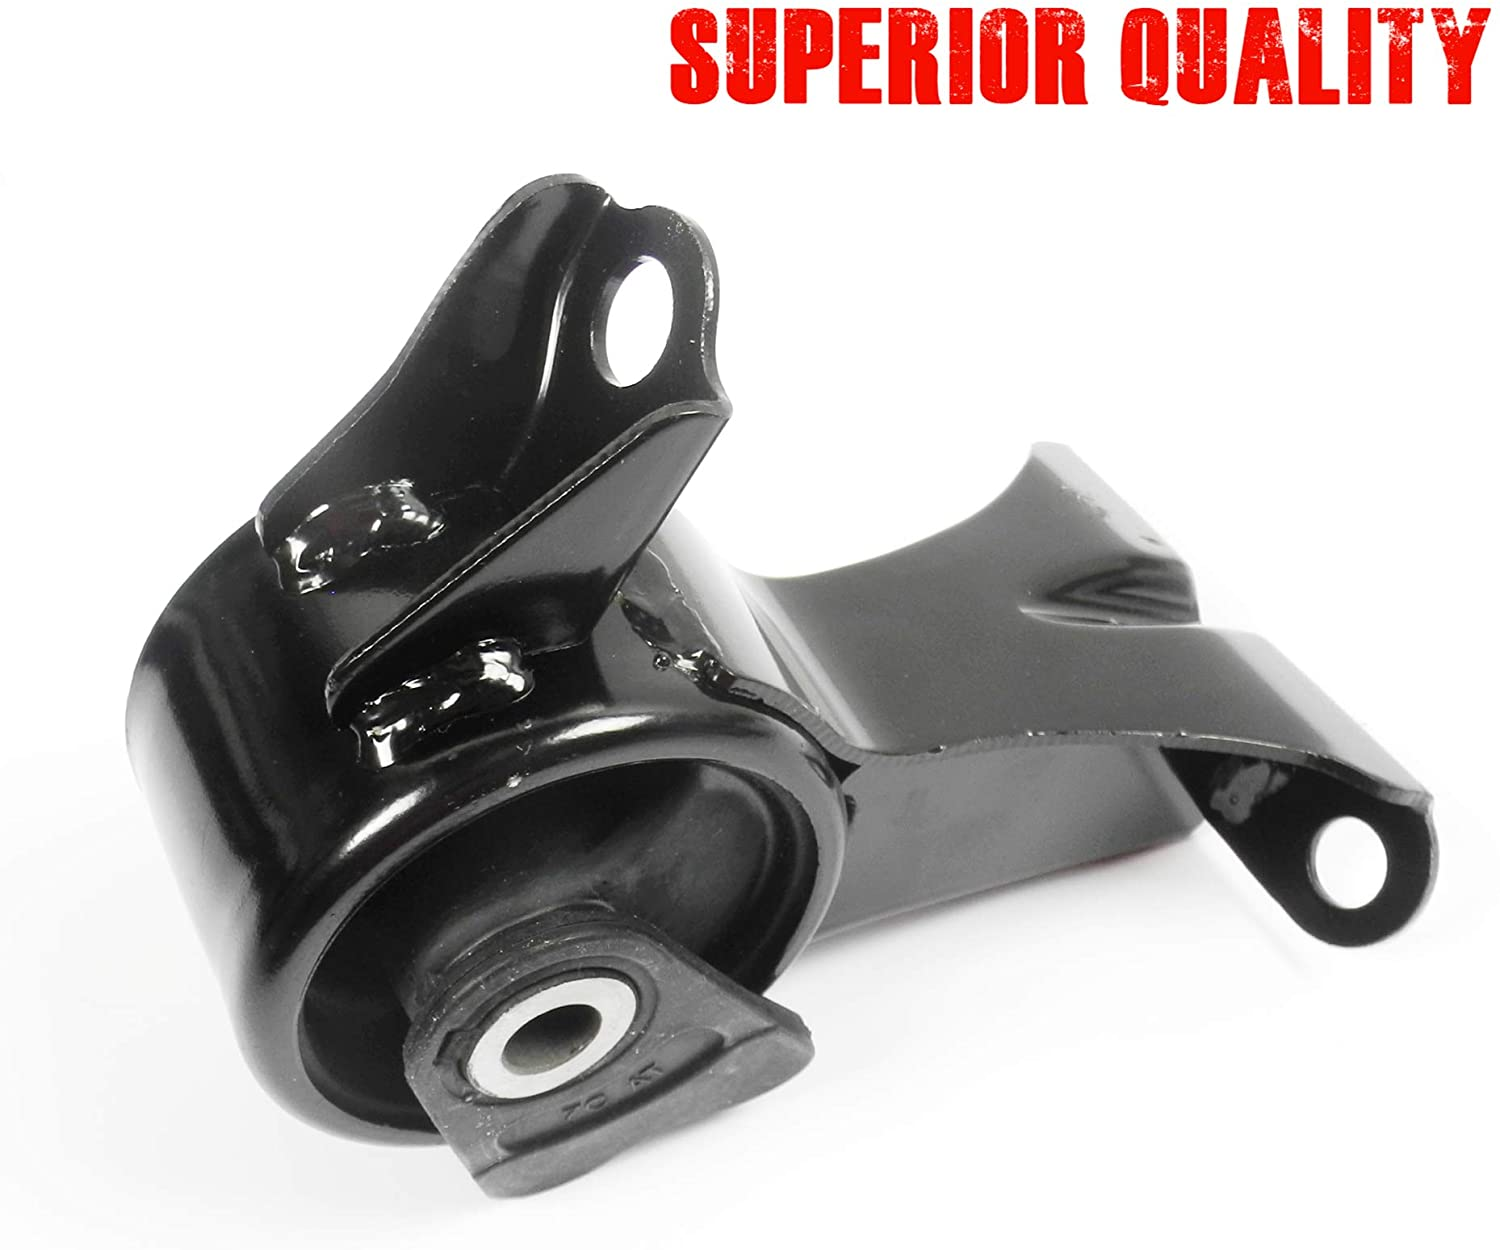 For Honda Brand New 2003-2005 Civic ELECTRIC/GAS 1.3L Transmission Mount FM020 2003 2004 2005